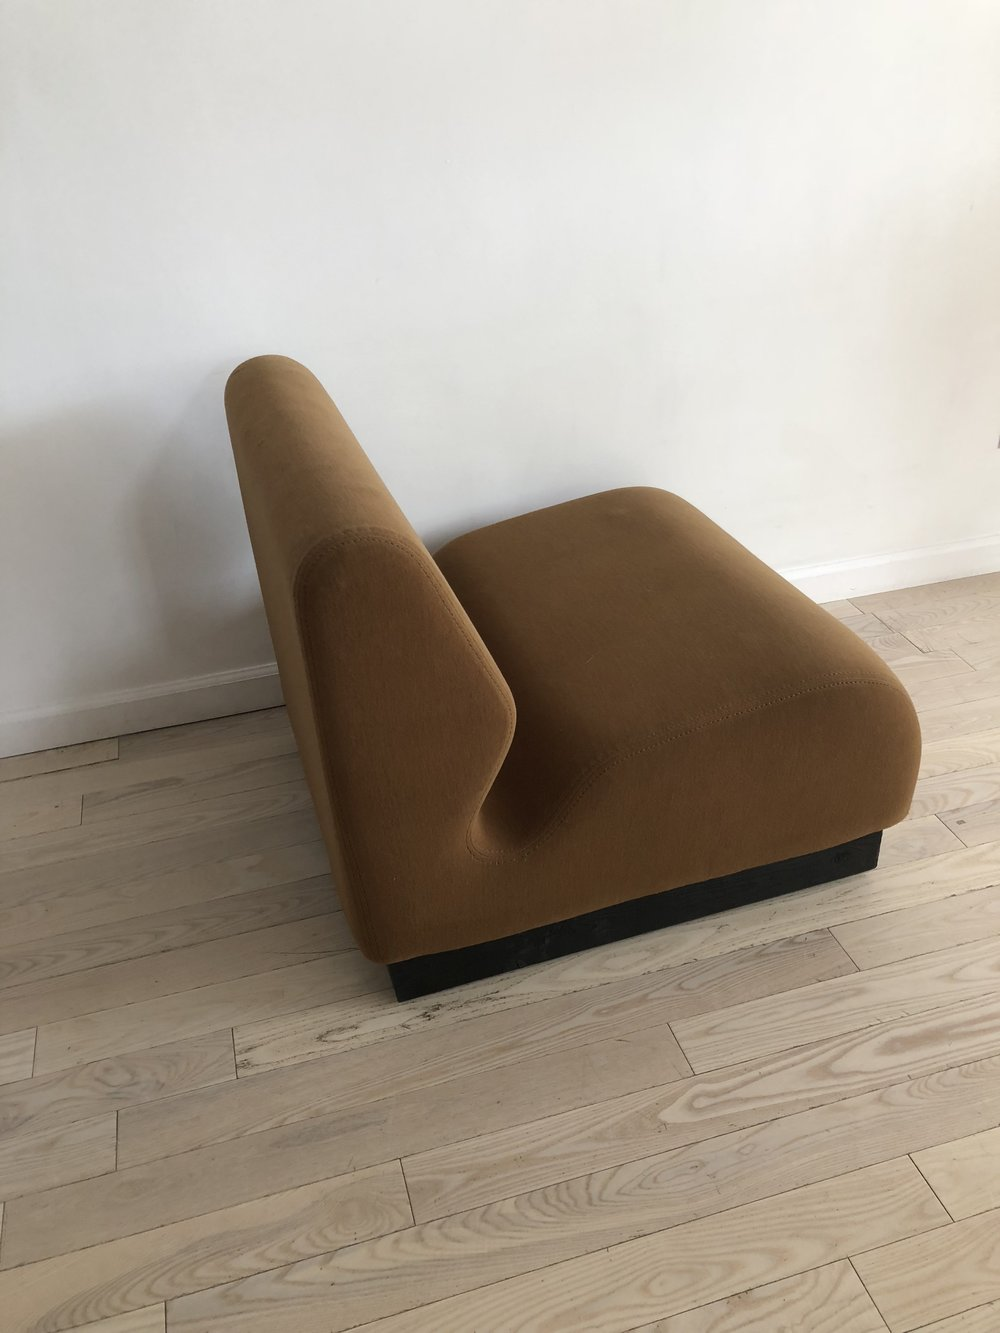 1975 Don Chadwick For Herman Miller Brown Slipper Chair